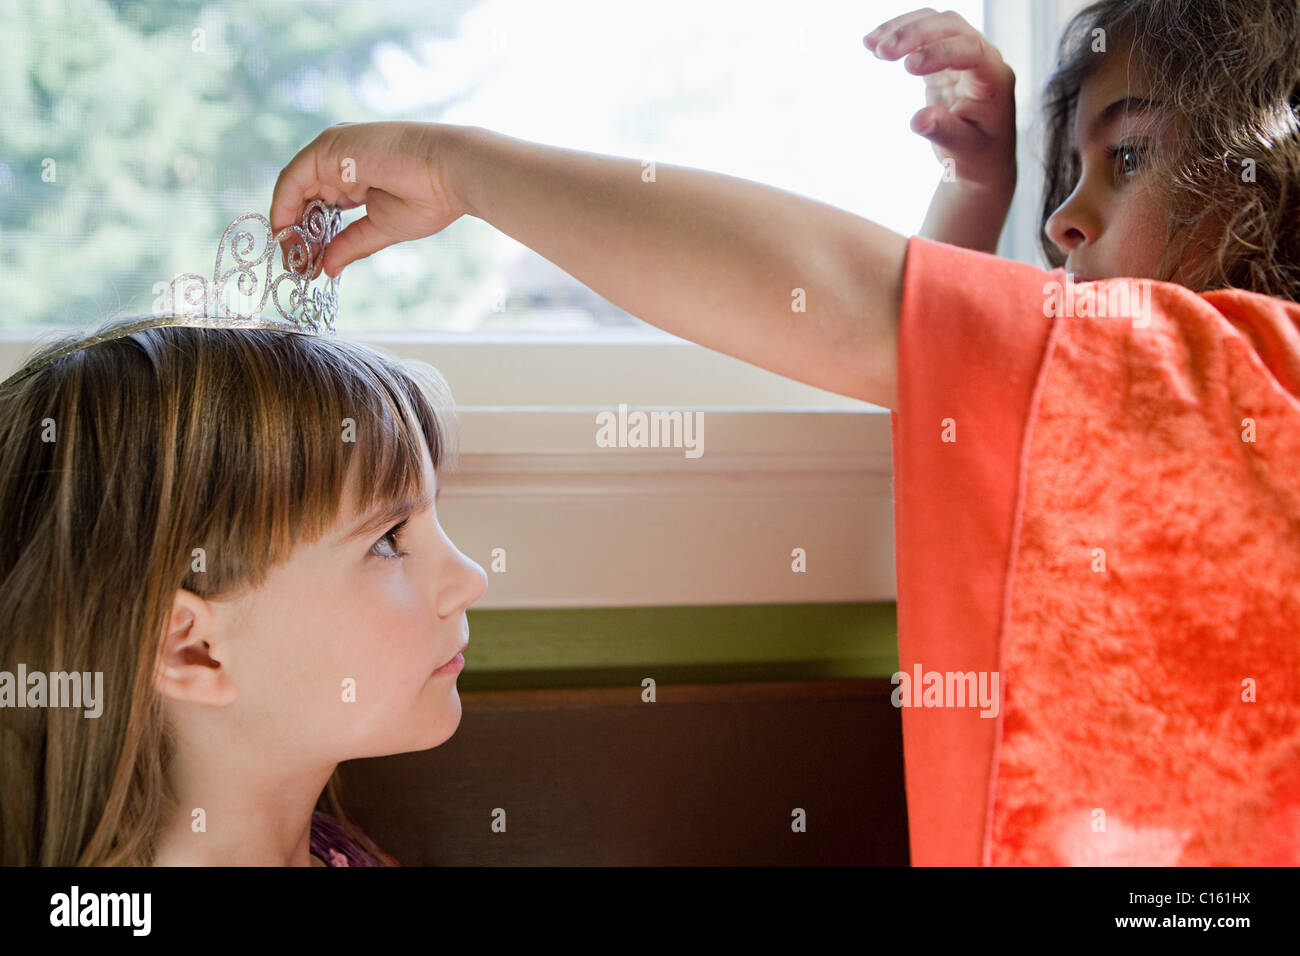 One girl putting tiara on another girl - Stock Image